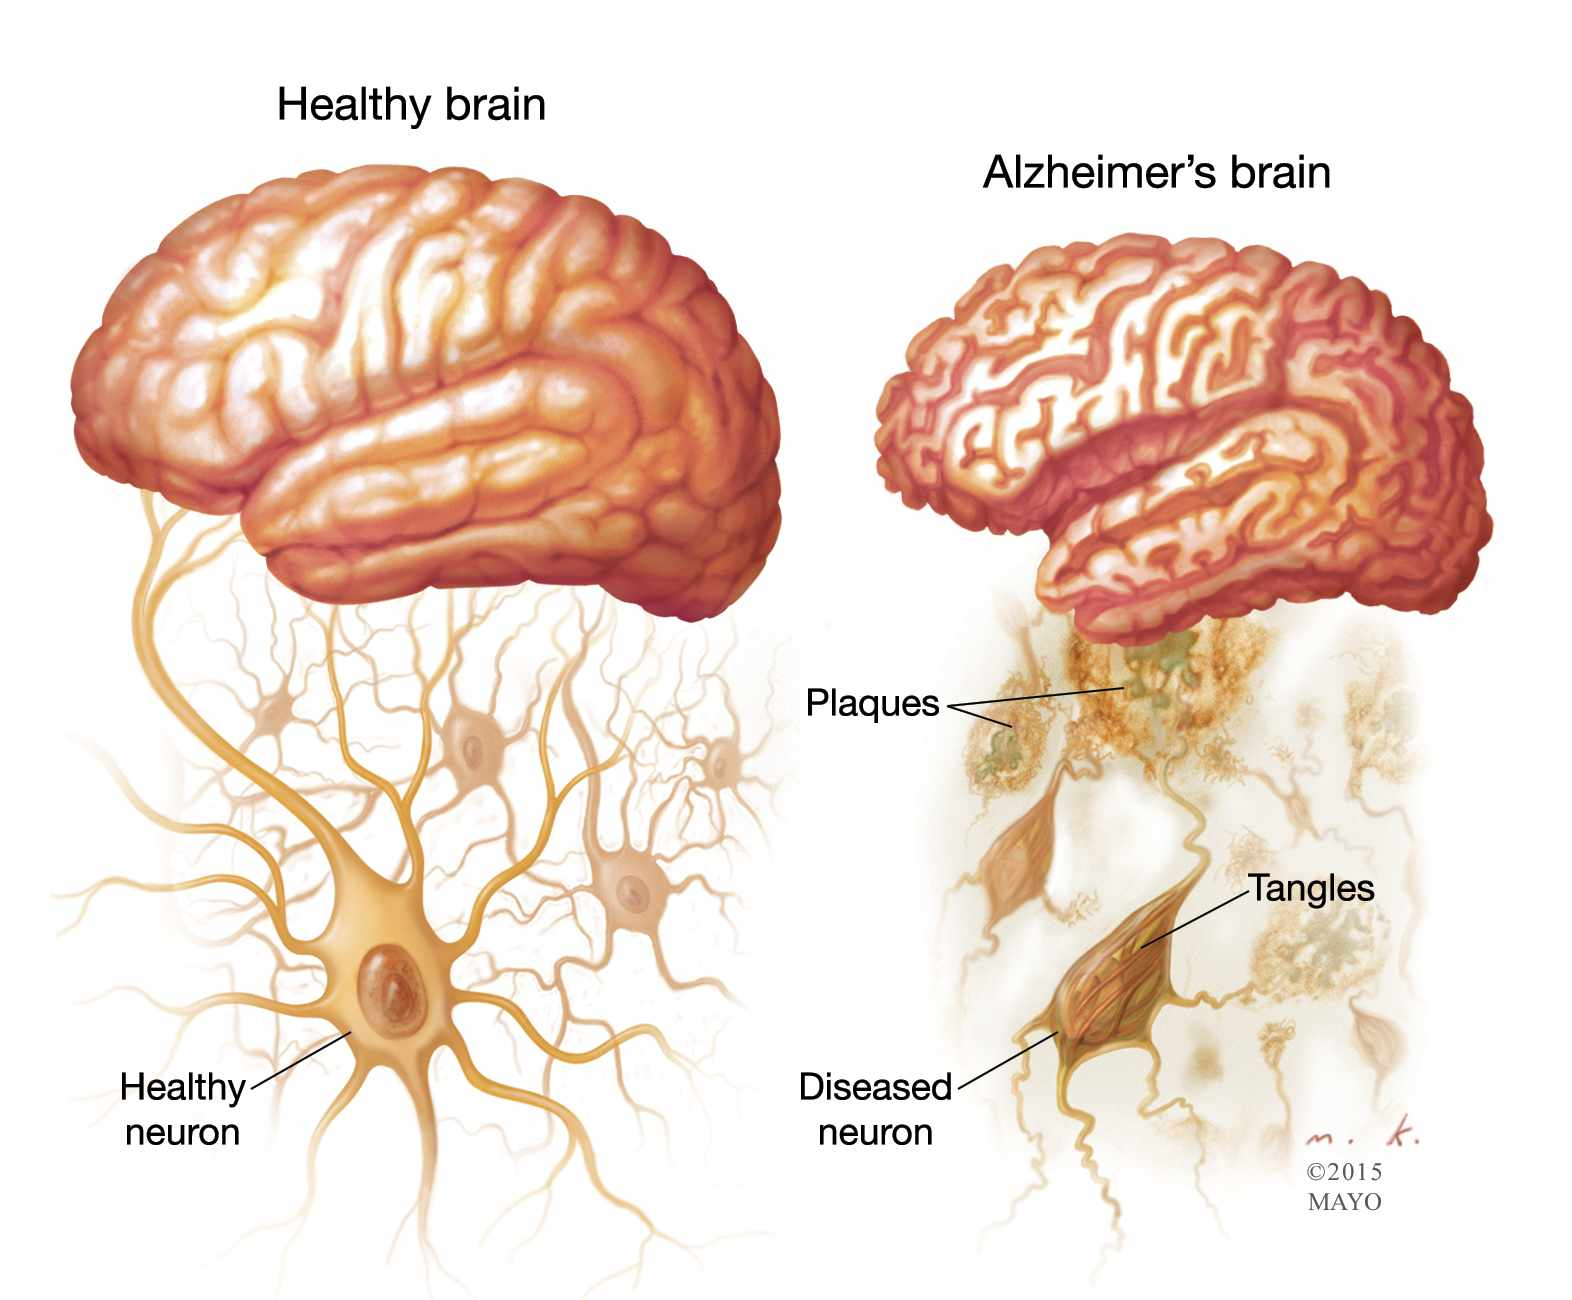 illustration of healthy brain and one with Alzheimer's